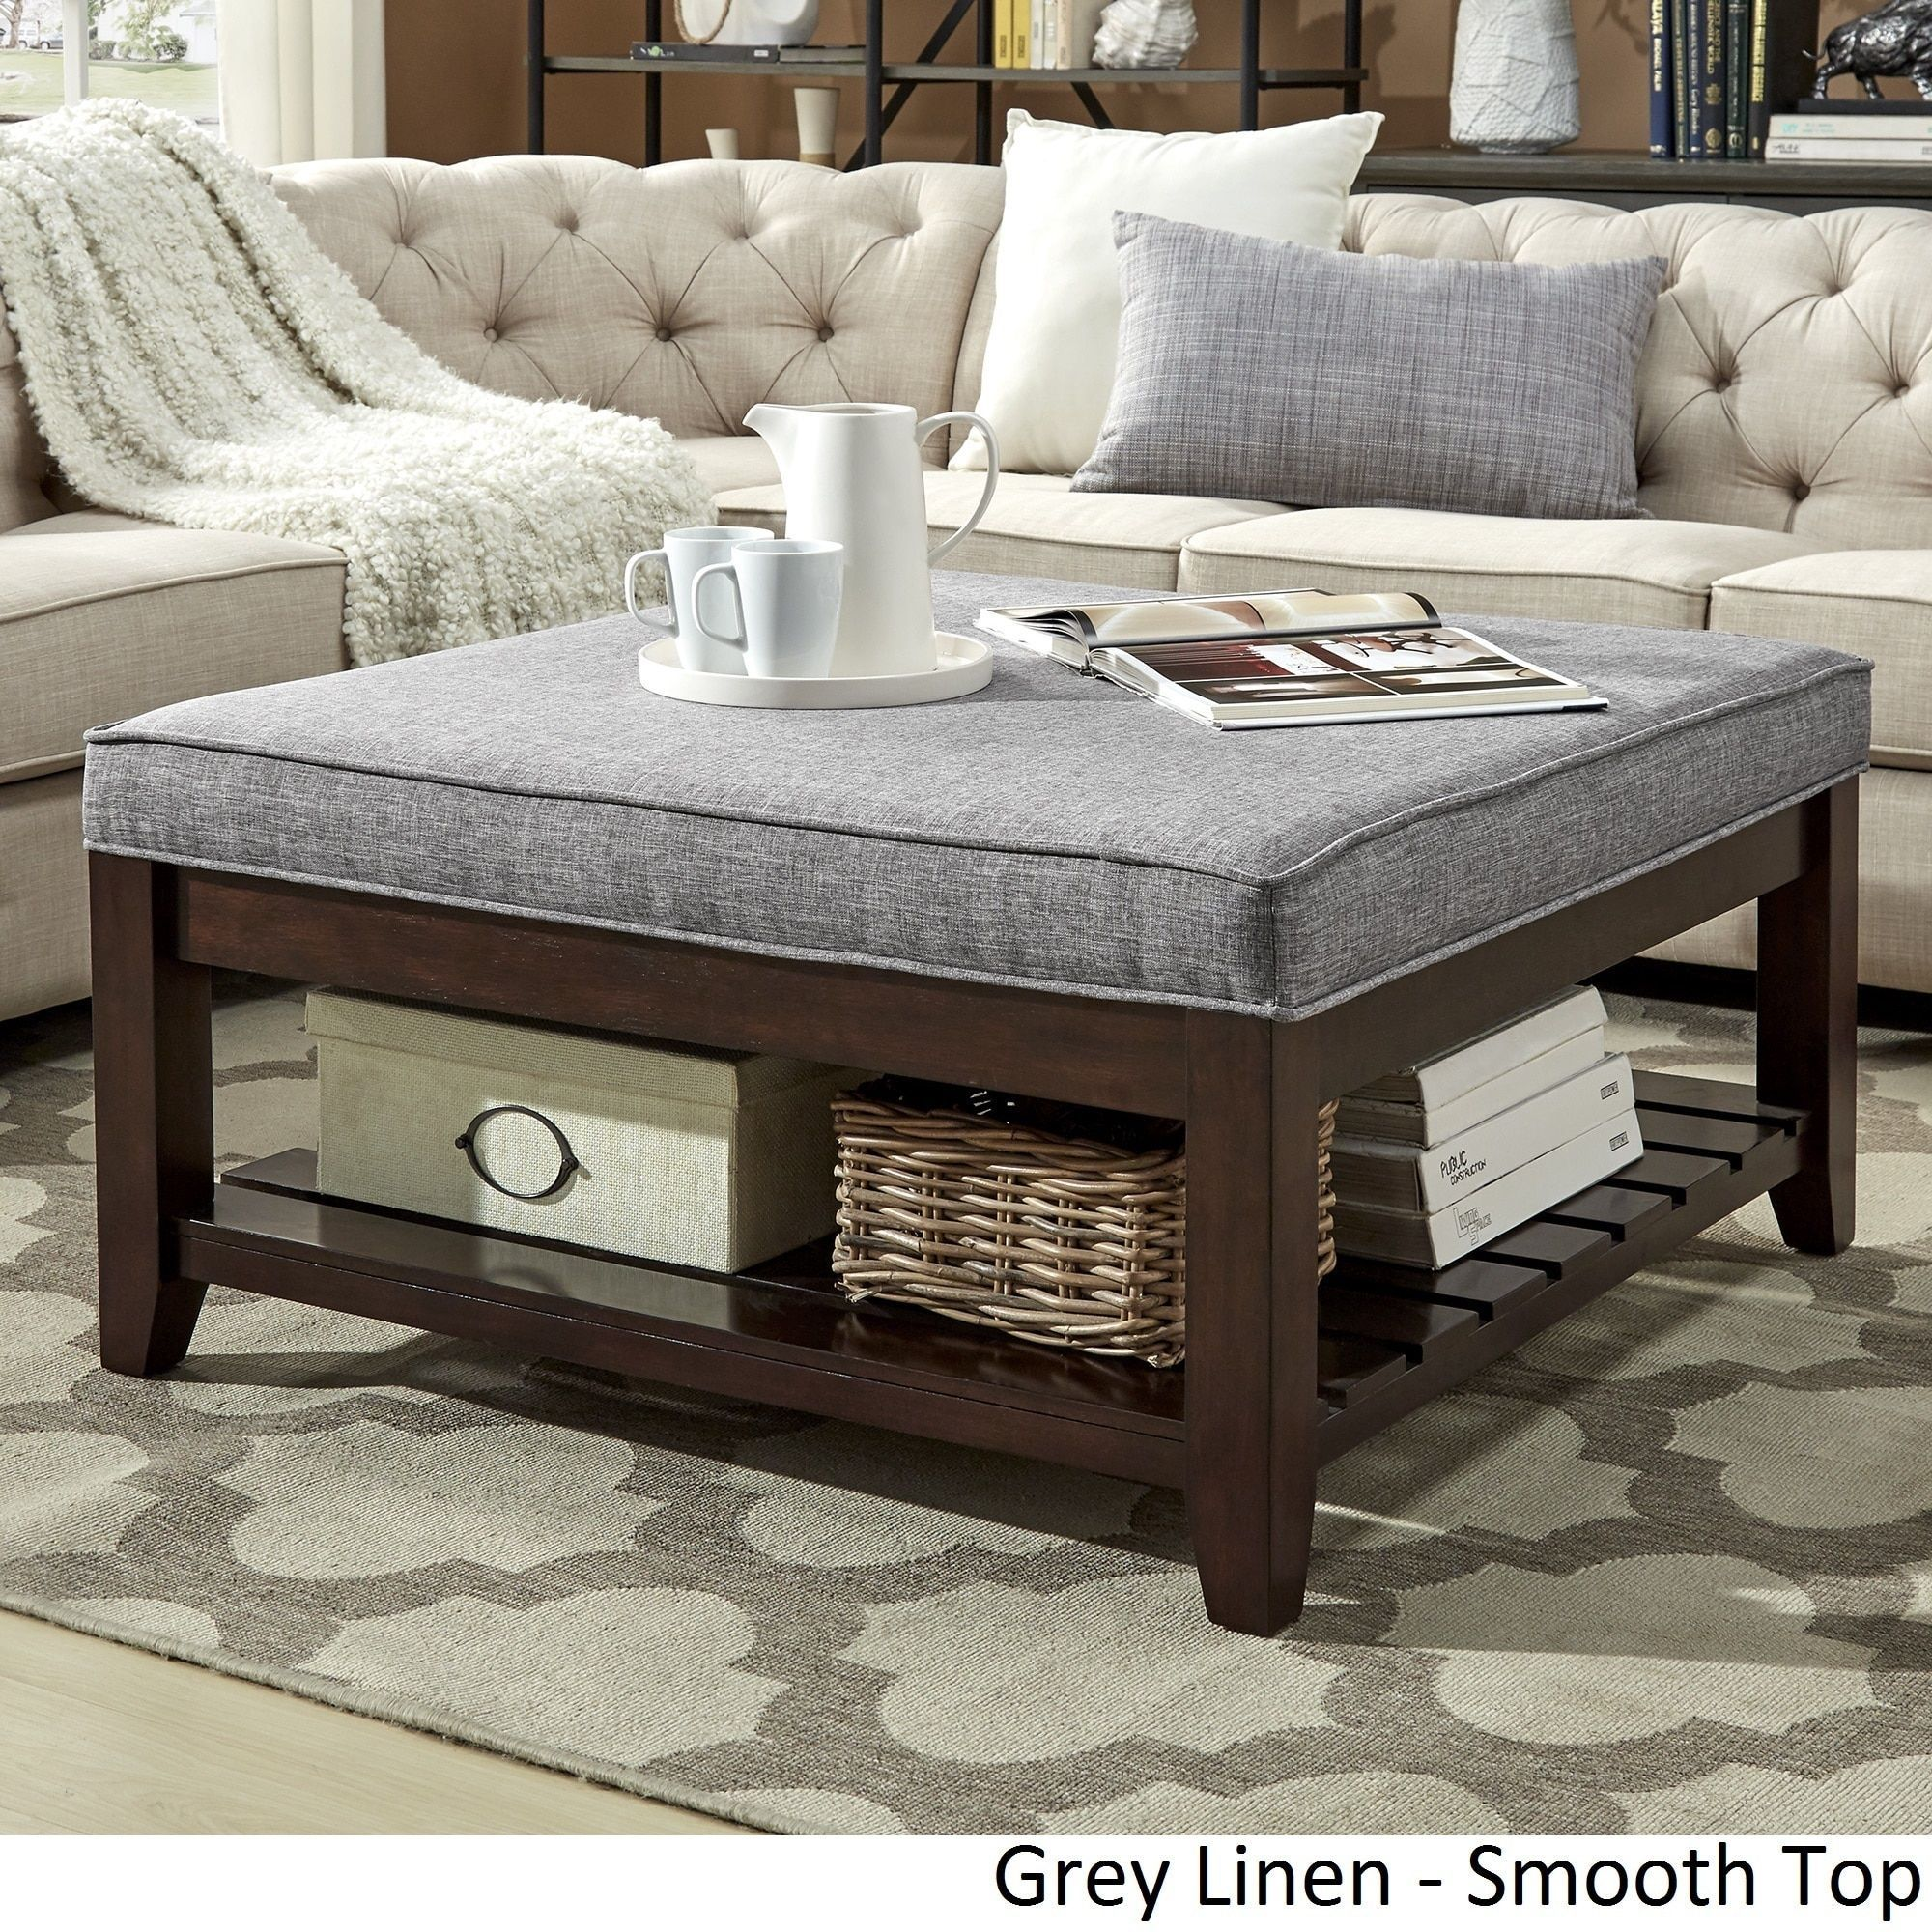 Table Coffee Square Ottoman Large